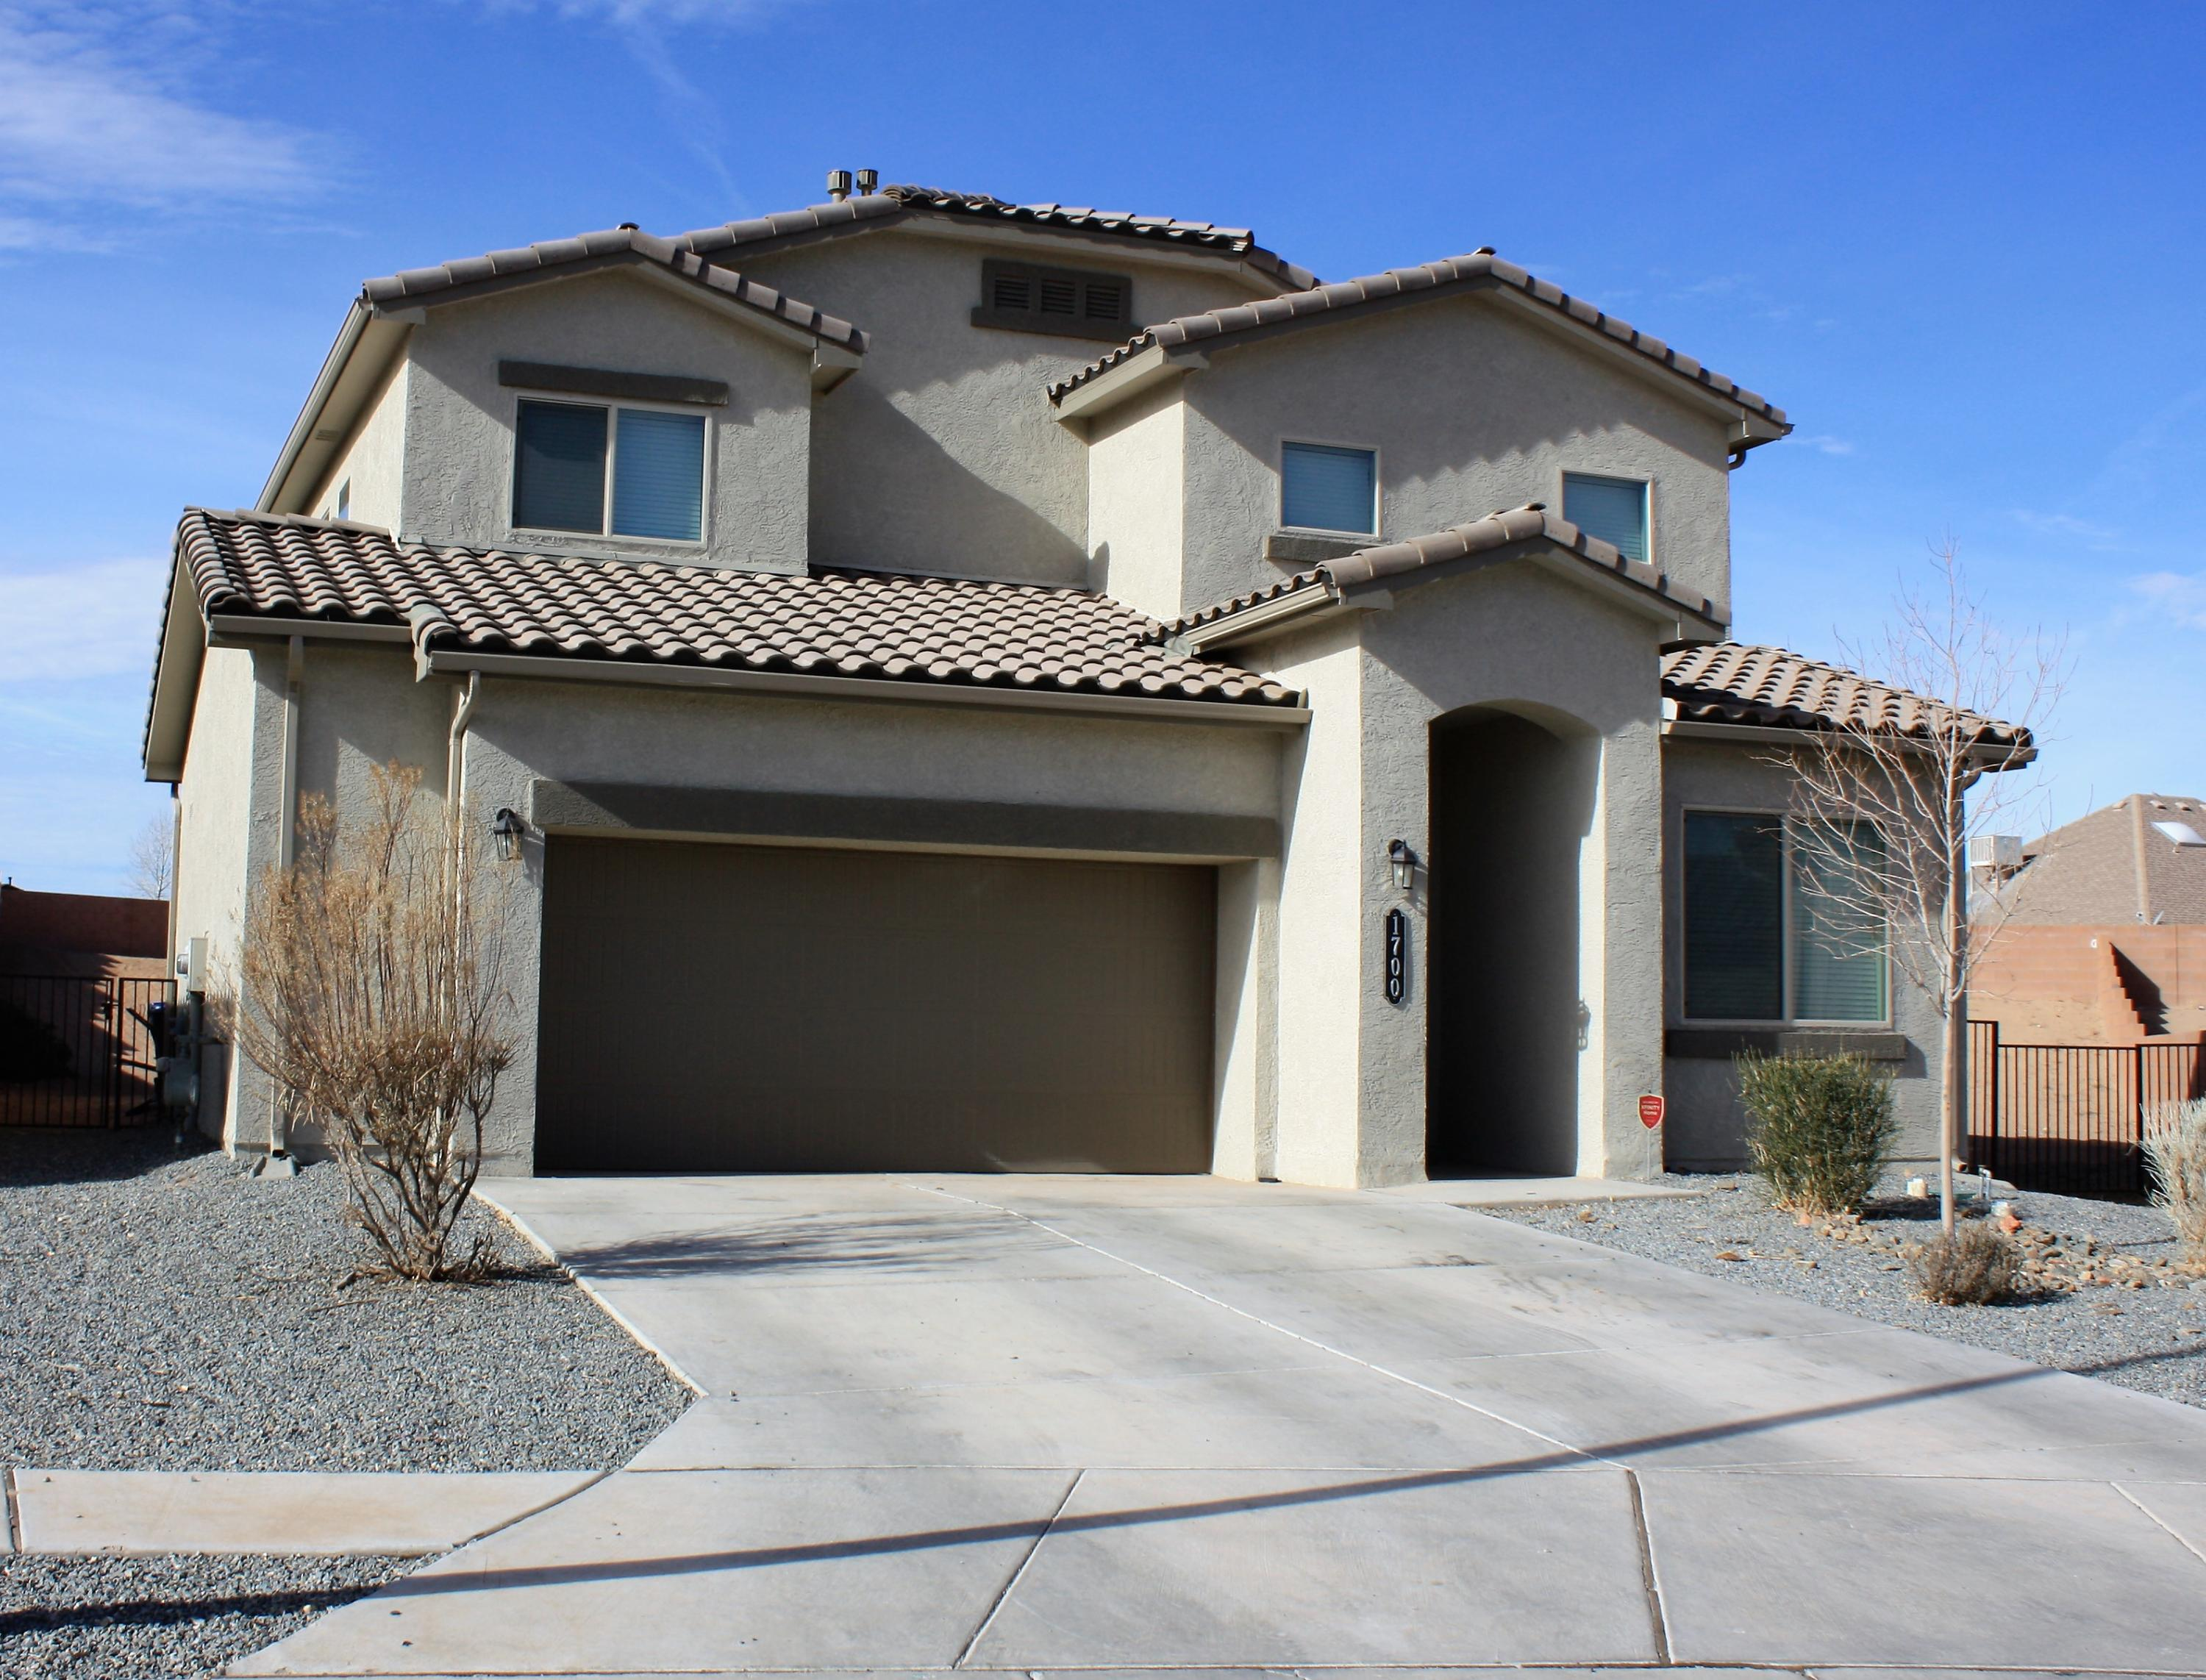 This immaculate well taken care of Rose floorplan shows like a model.  The home is situated on a huge lot that is a third of an acre.  This home boasts a master suite on the first floor and a junior master on the second.  The kitchen has granite counters and open to the living room which has a massive 18ft ceiling.  The laundry room has been expanded and has access from the master as well.  The office is situated in the front of the house where working from home would allow you a nice calm space.  The second floor opens to a big loft and three bedrooms.  The backyard is so big a pool and master garden would be nice additions.